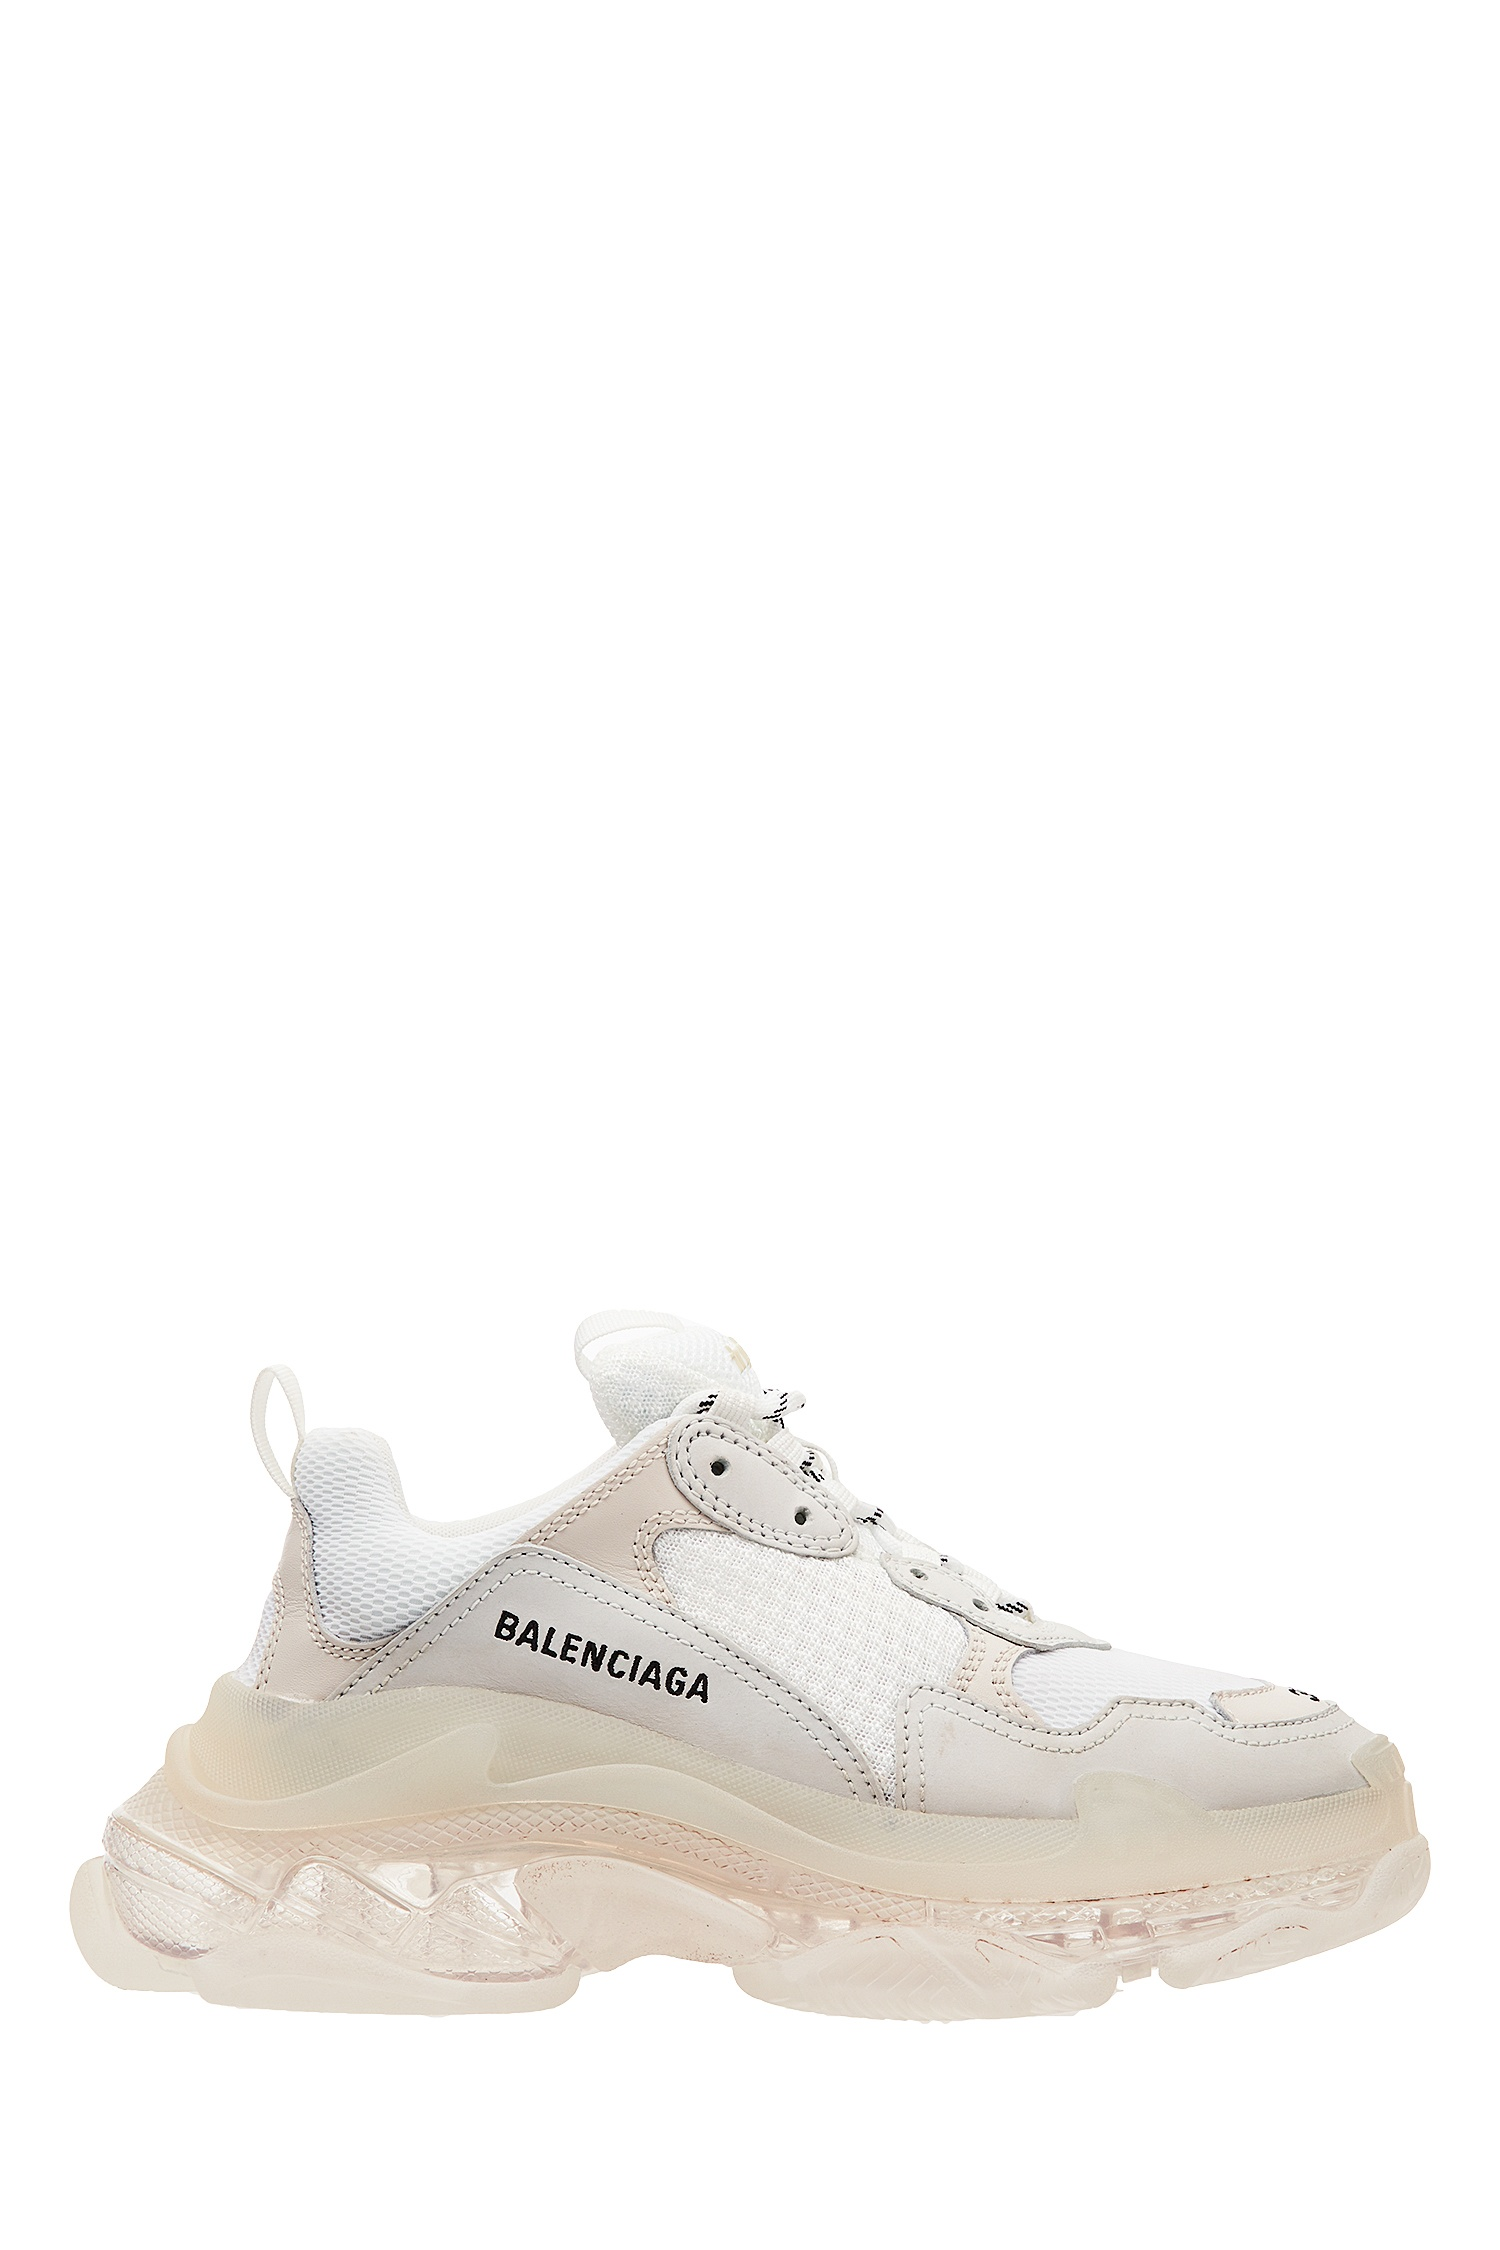 Белые кроссовки Triple S Clear Sole Balenciaga (фото)